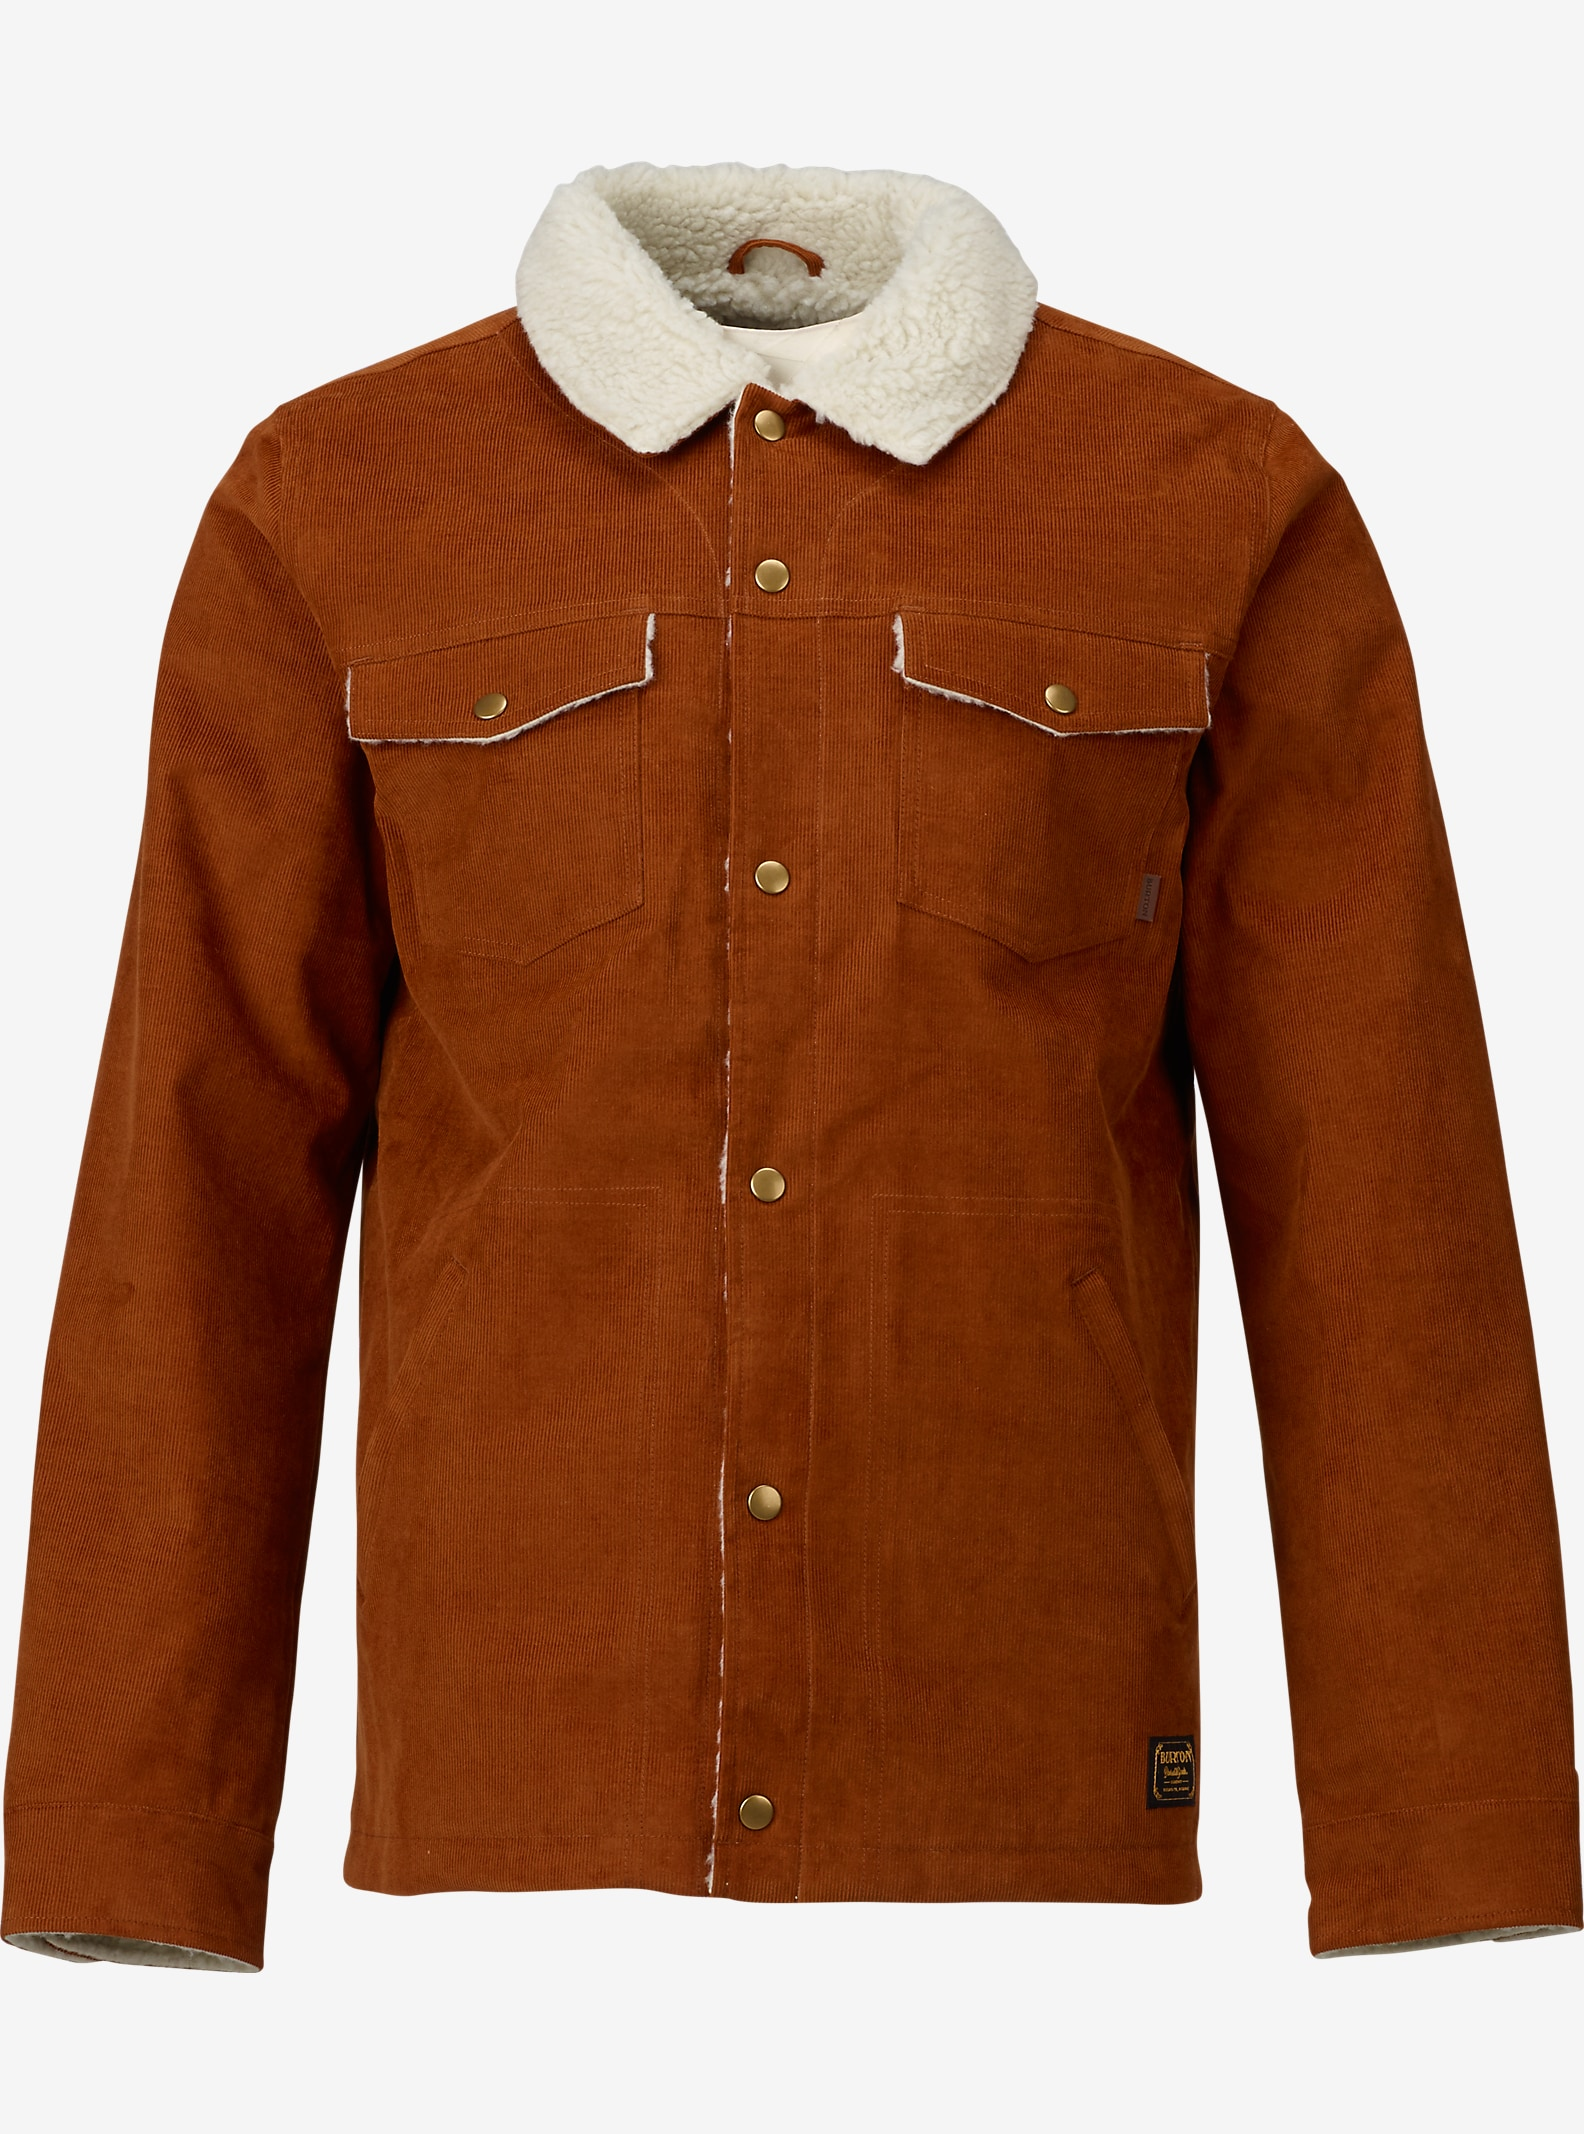 Burton Cordova Jacket shown in Chestnut Corduroy